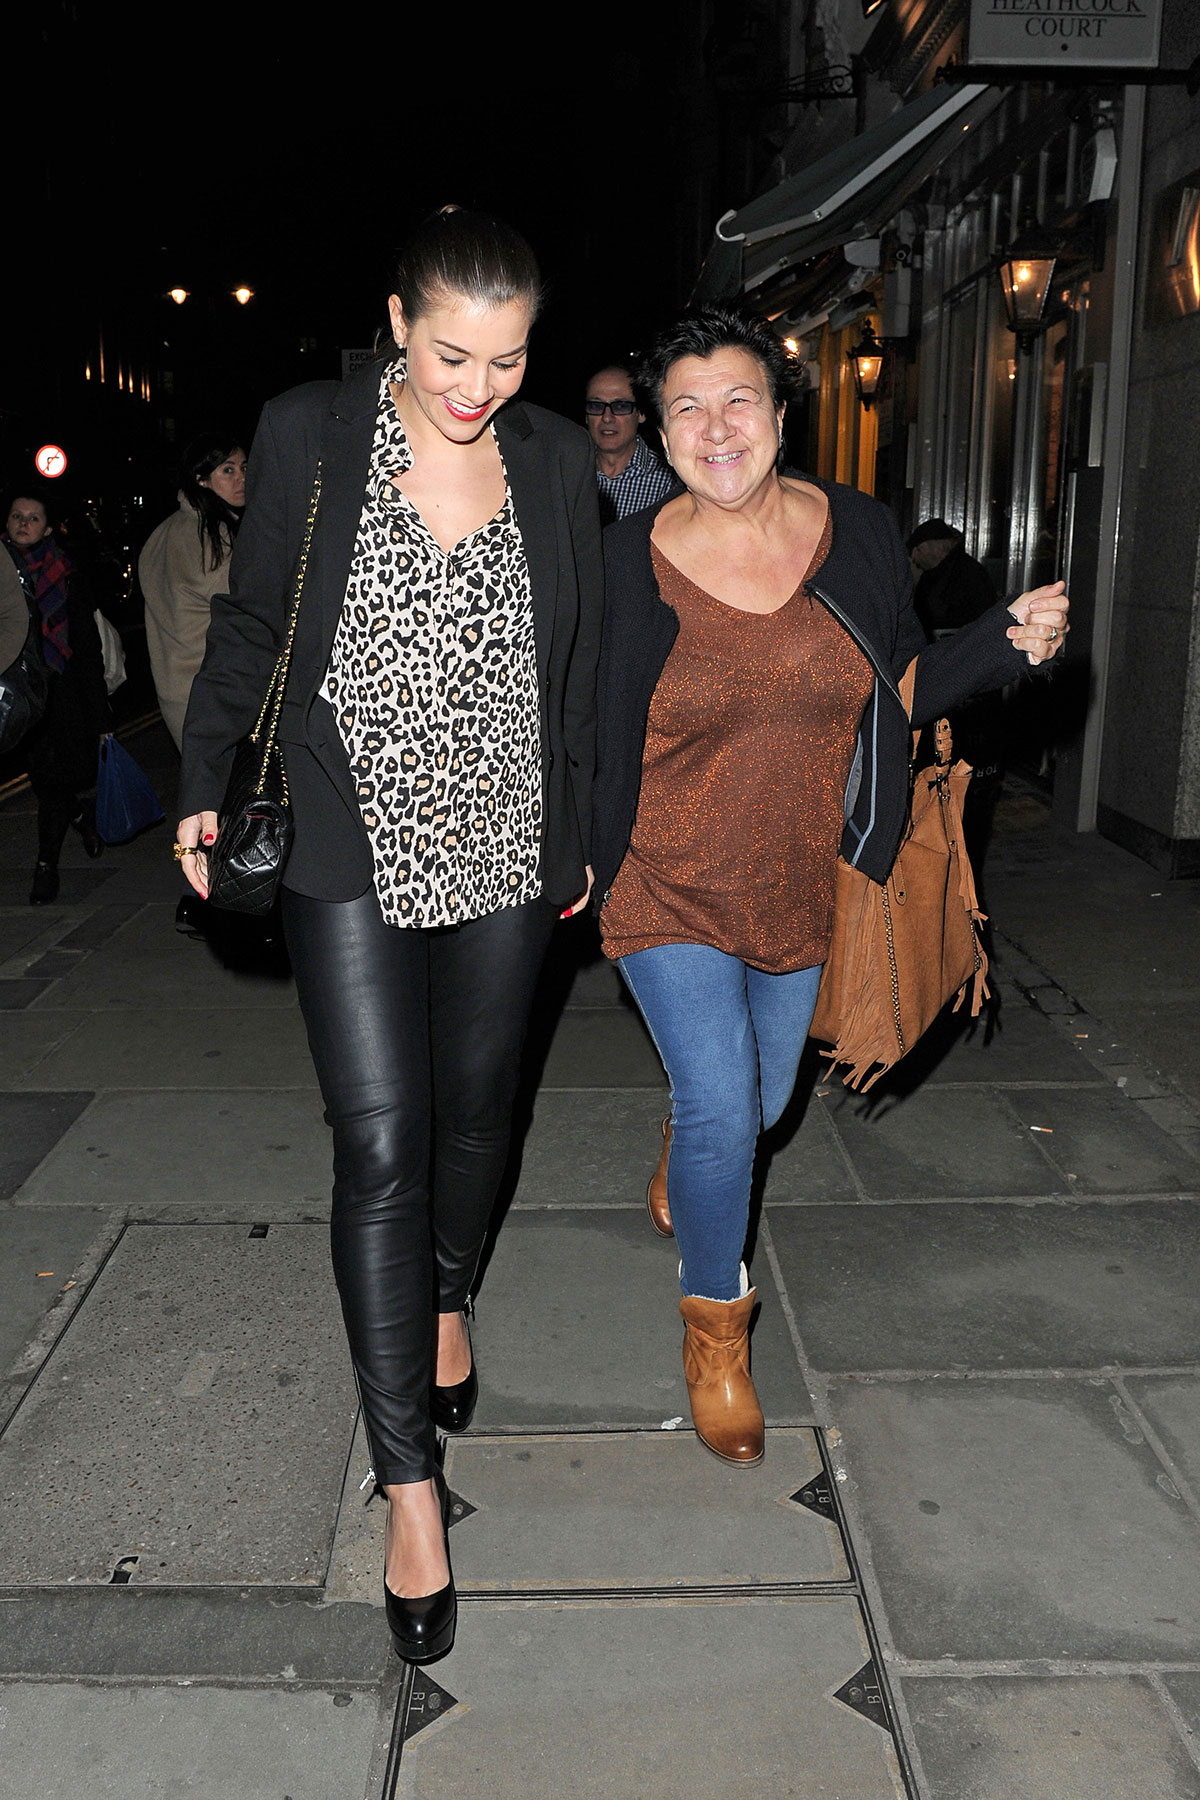 Imogen Thomas goes to see The Bodyguard Musical